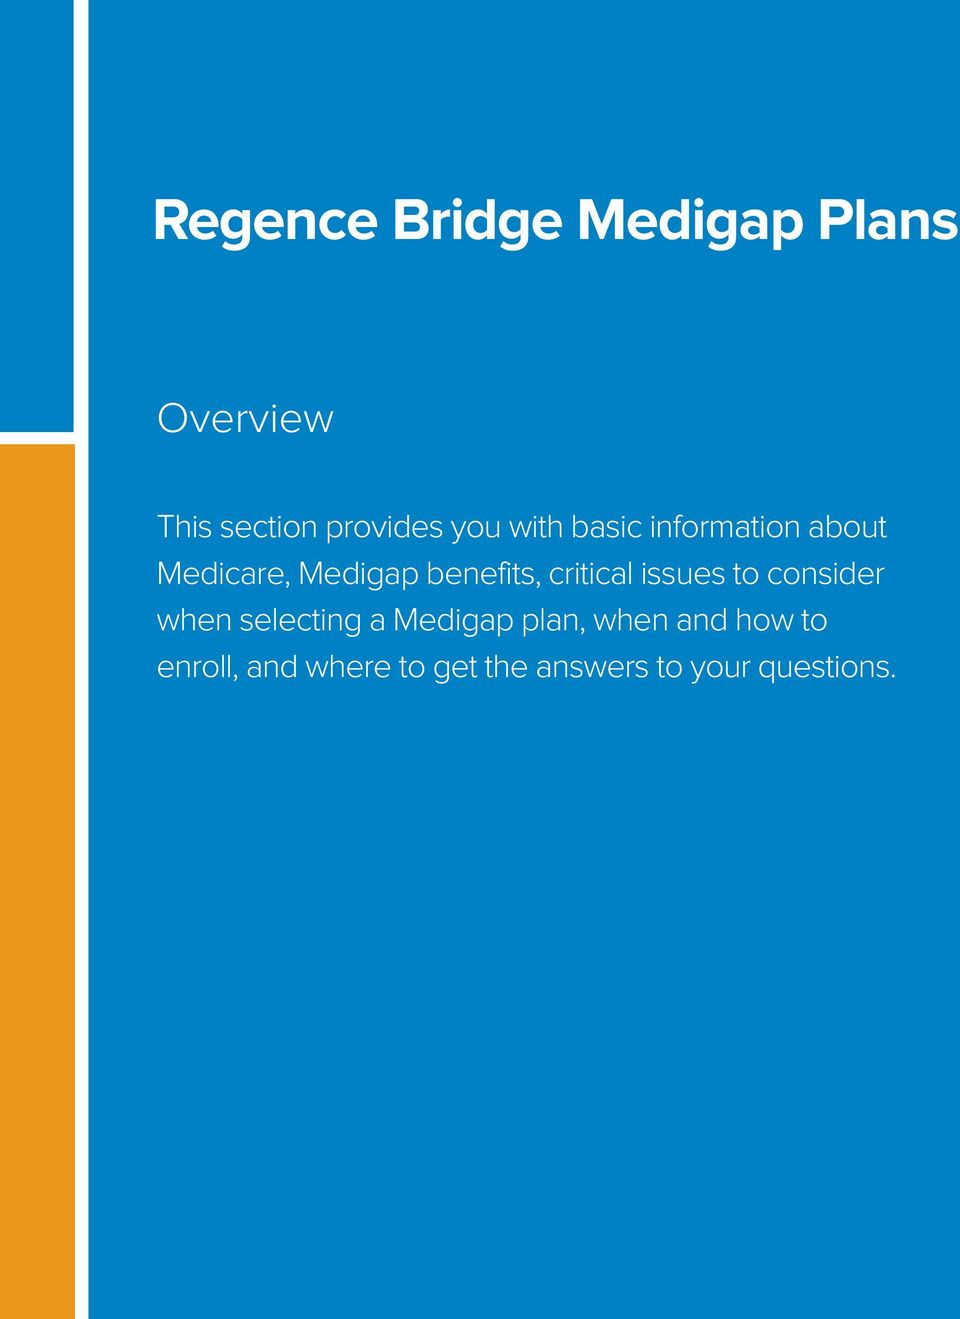 critical issues to consider when selecting a Medigap plan,